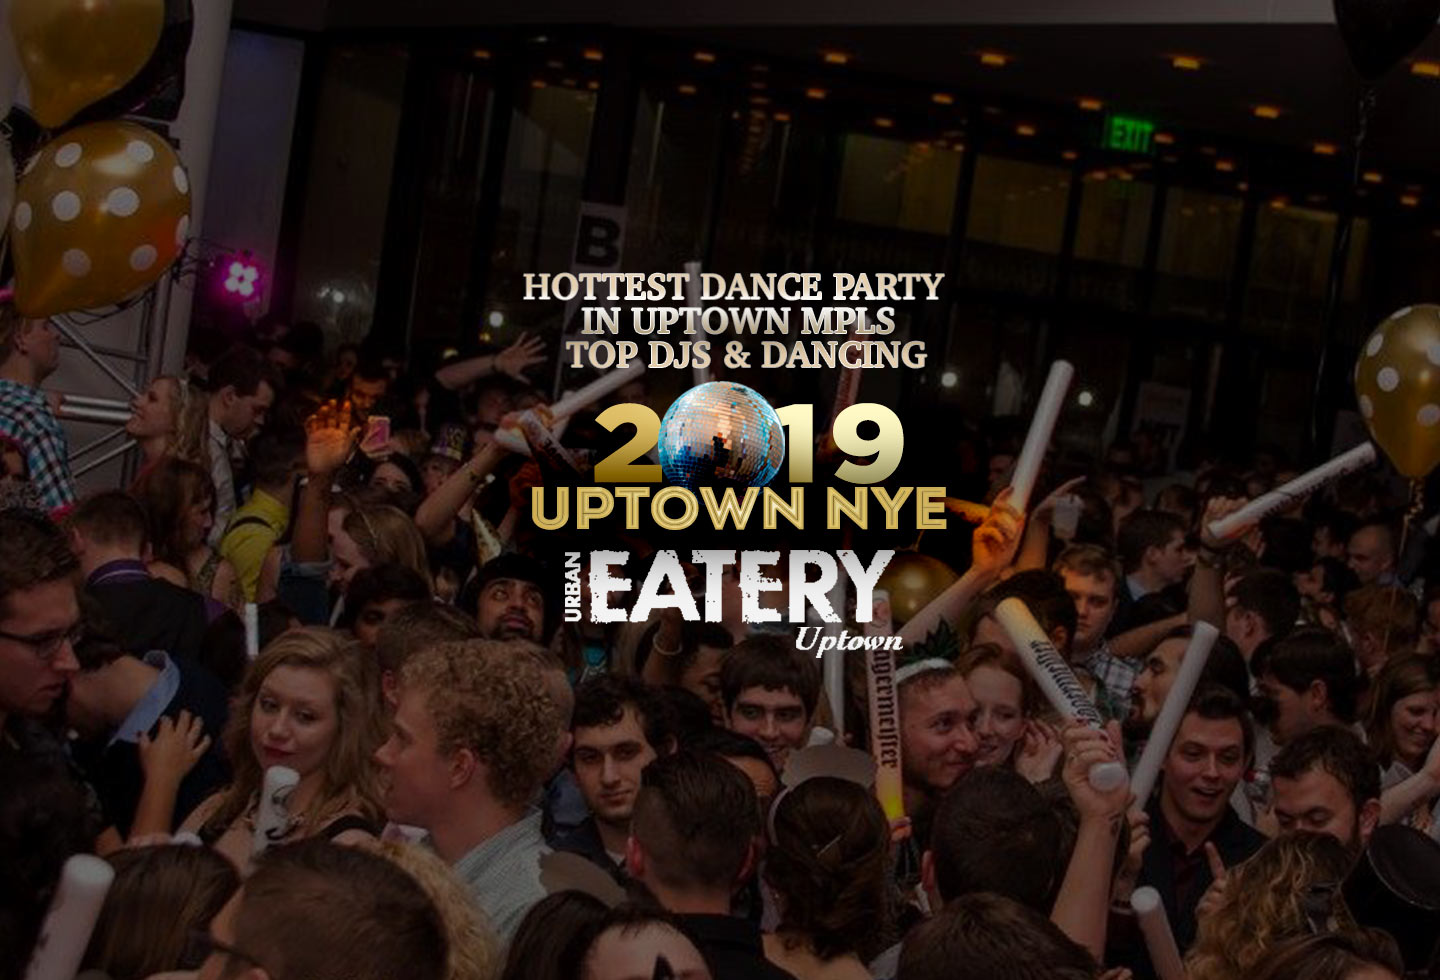 Uptown Minneapolis NYE 2019 Event